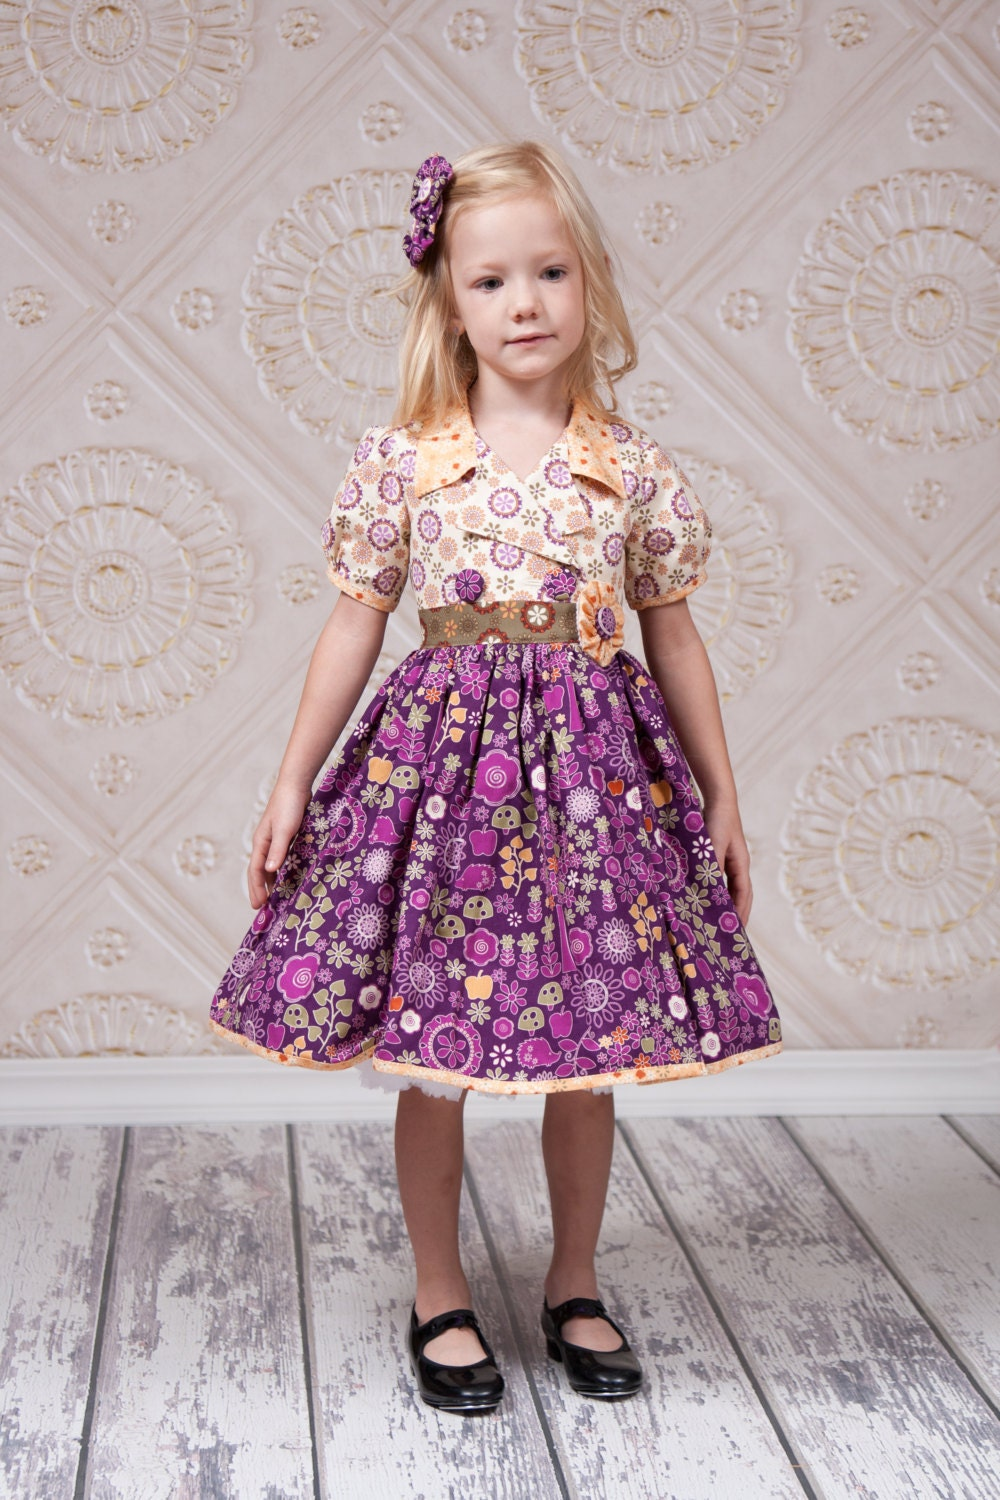 Online shopping a variety of best tea girls clothing at thrushop-06mq49hz.ga Buy cheap girls clothing set suits online from China today! We offers tea girls clothing products. Enjoy fast delivery, best quality and cheap price. Free worldwide shipping available!